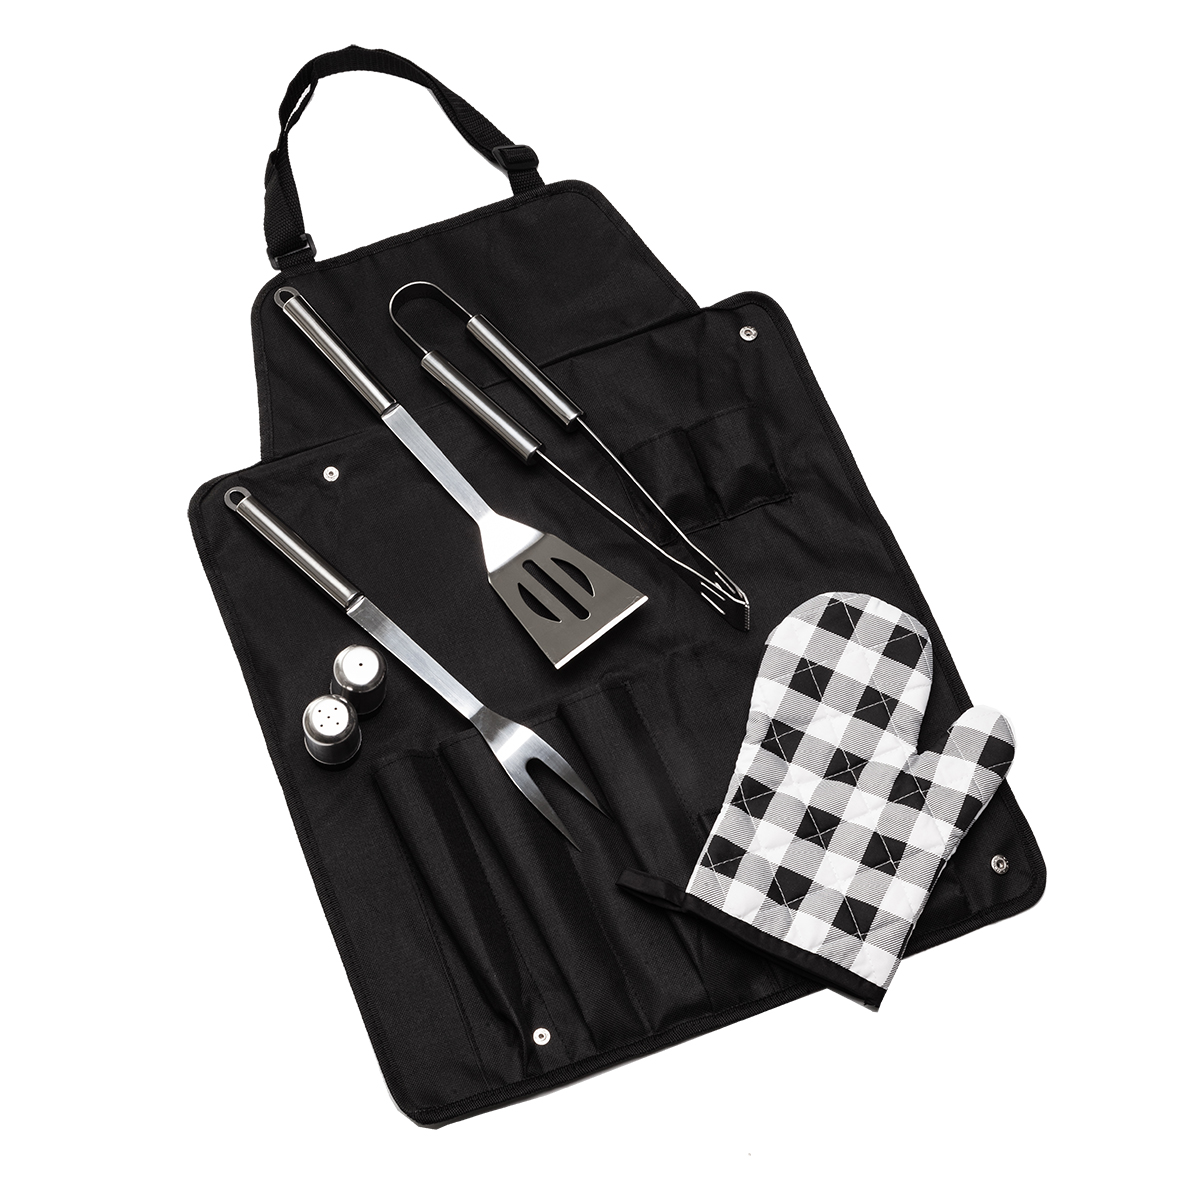 STEAKOUT&BBQ set for barbecue with apron,  black